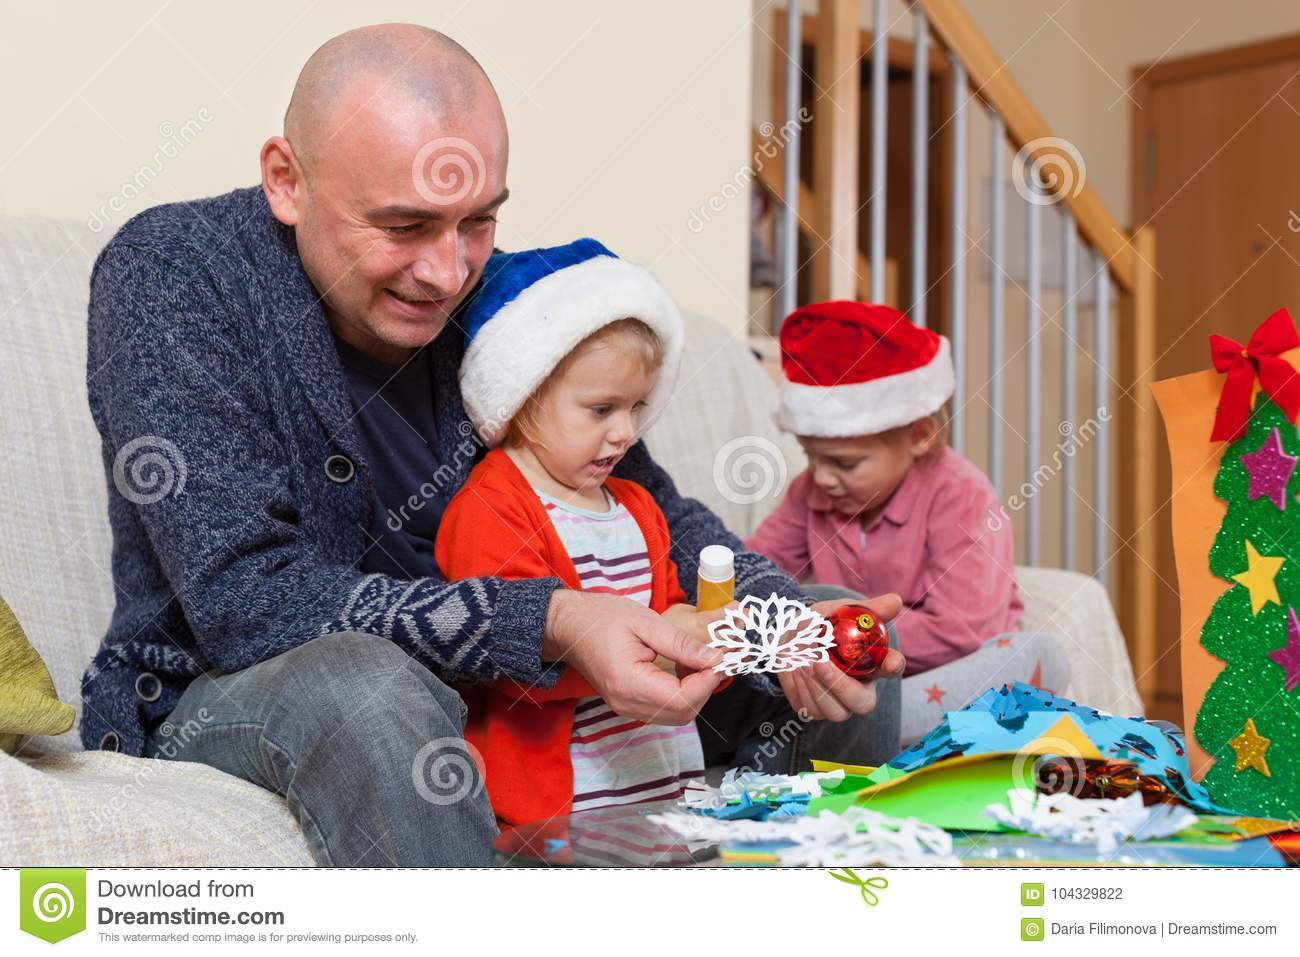 Dad with two daughters making crafts